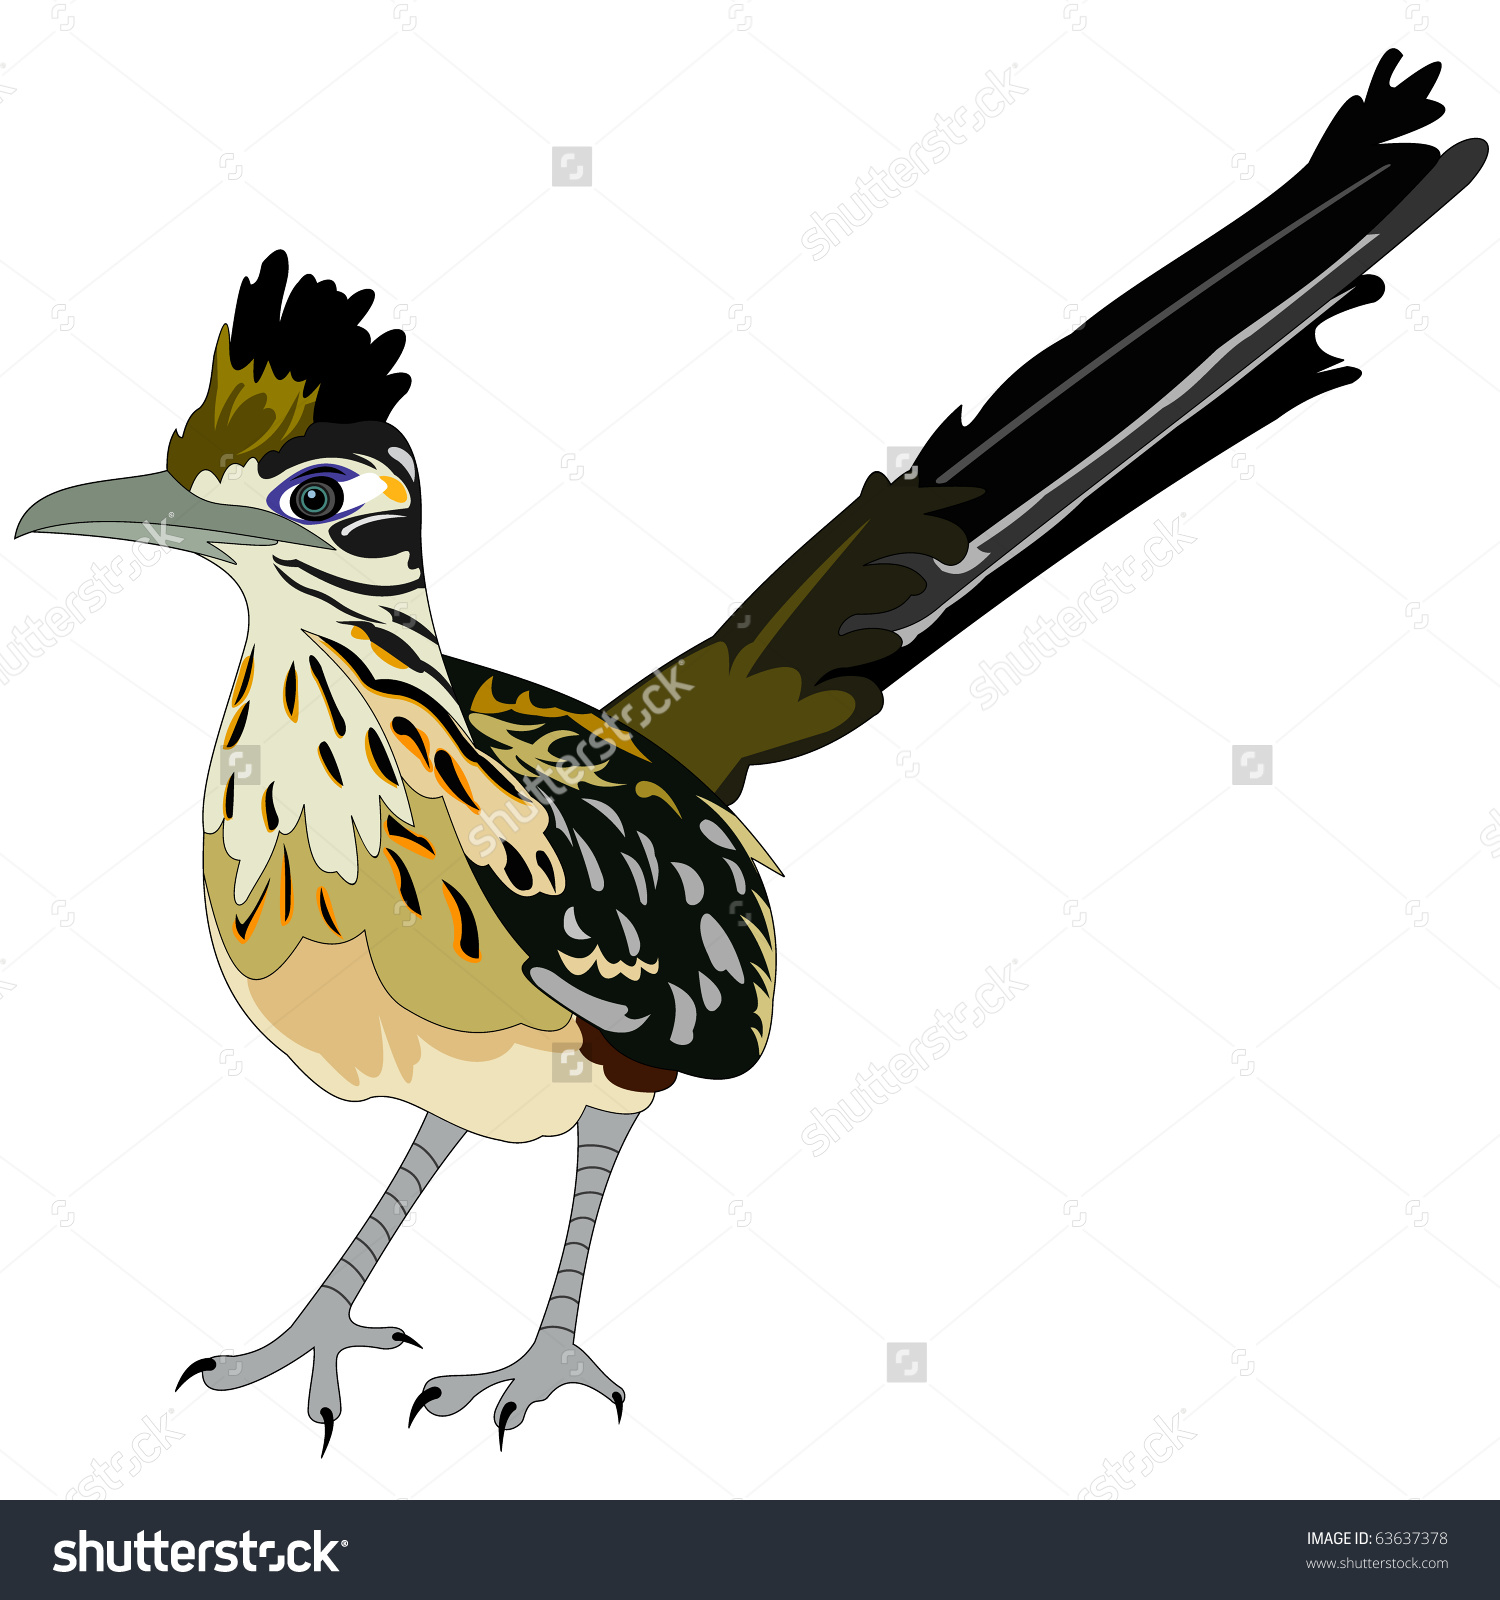 Greater Roadrunner clipart #13, Download drawings